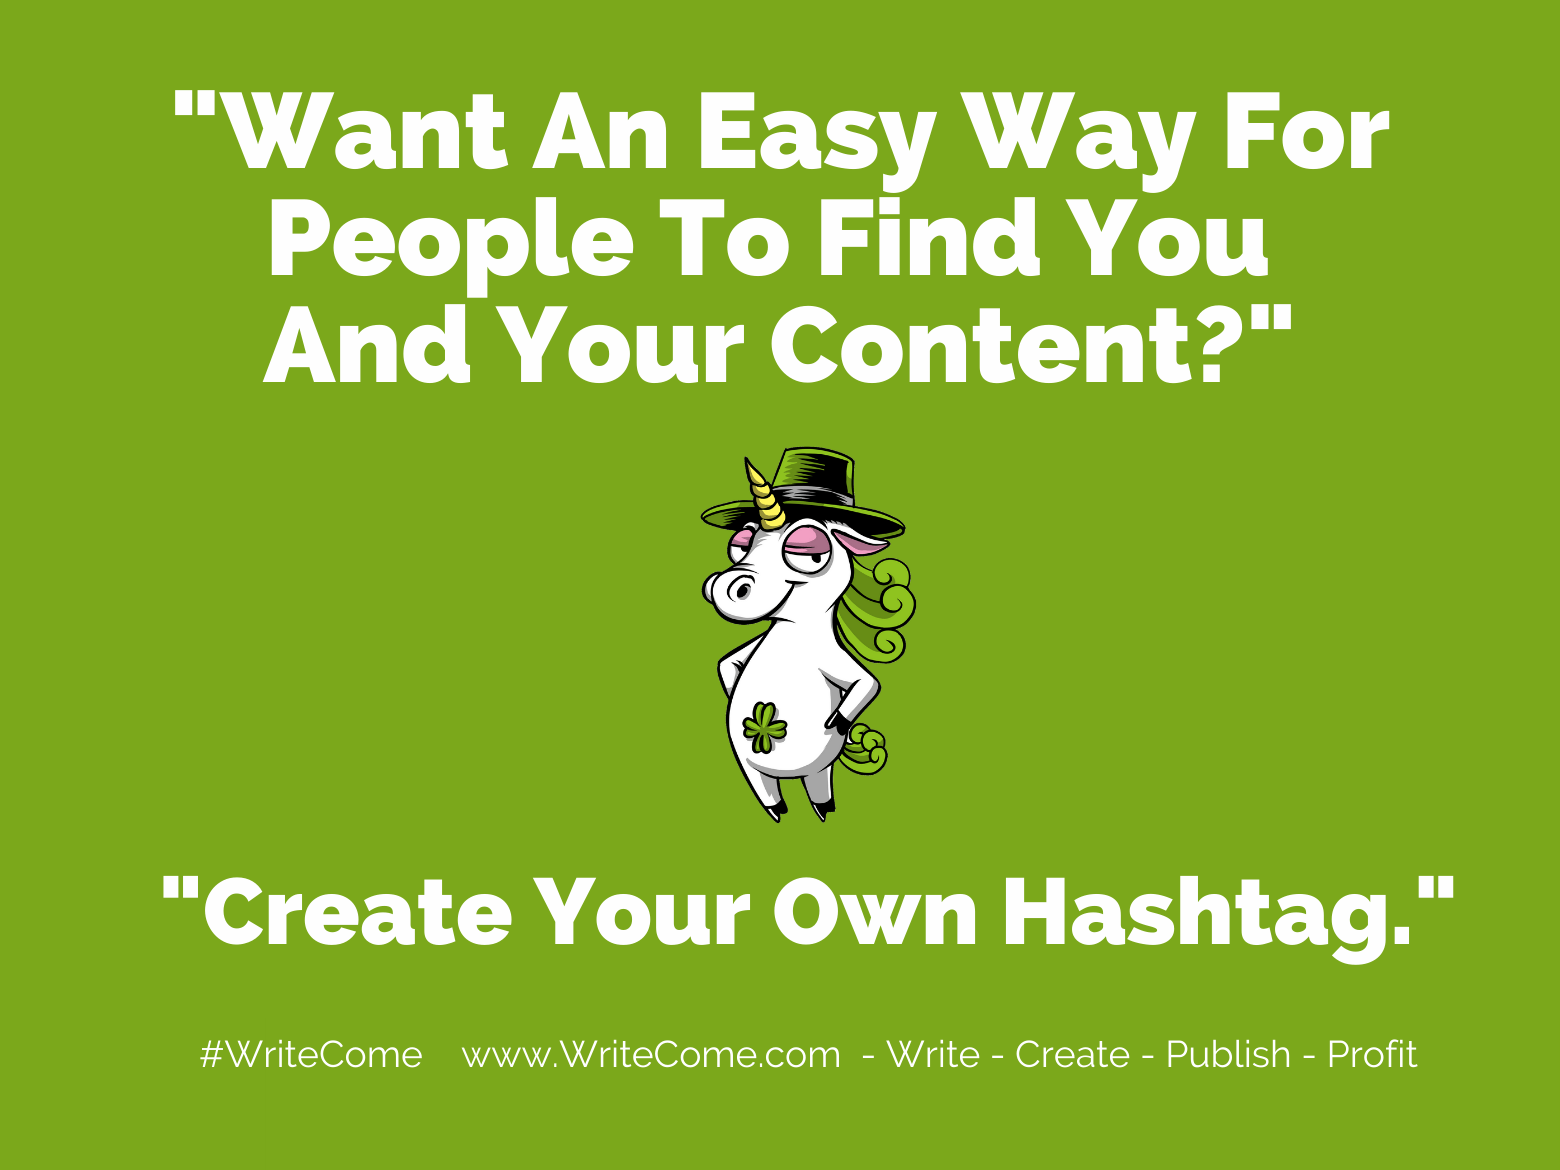 Want Any Easy Way To Be Found Online?